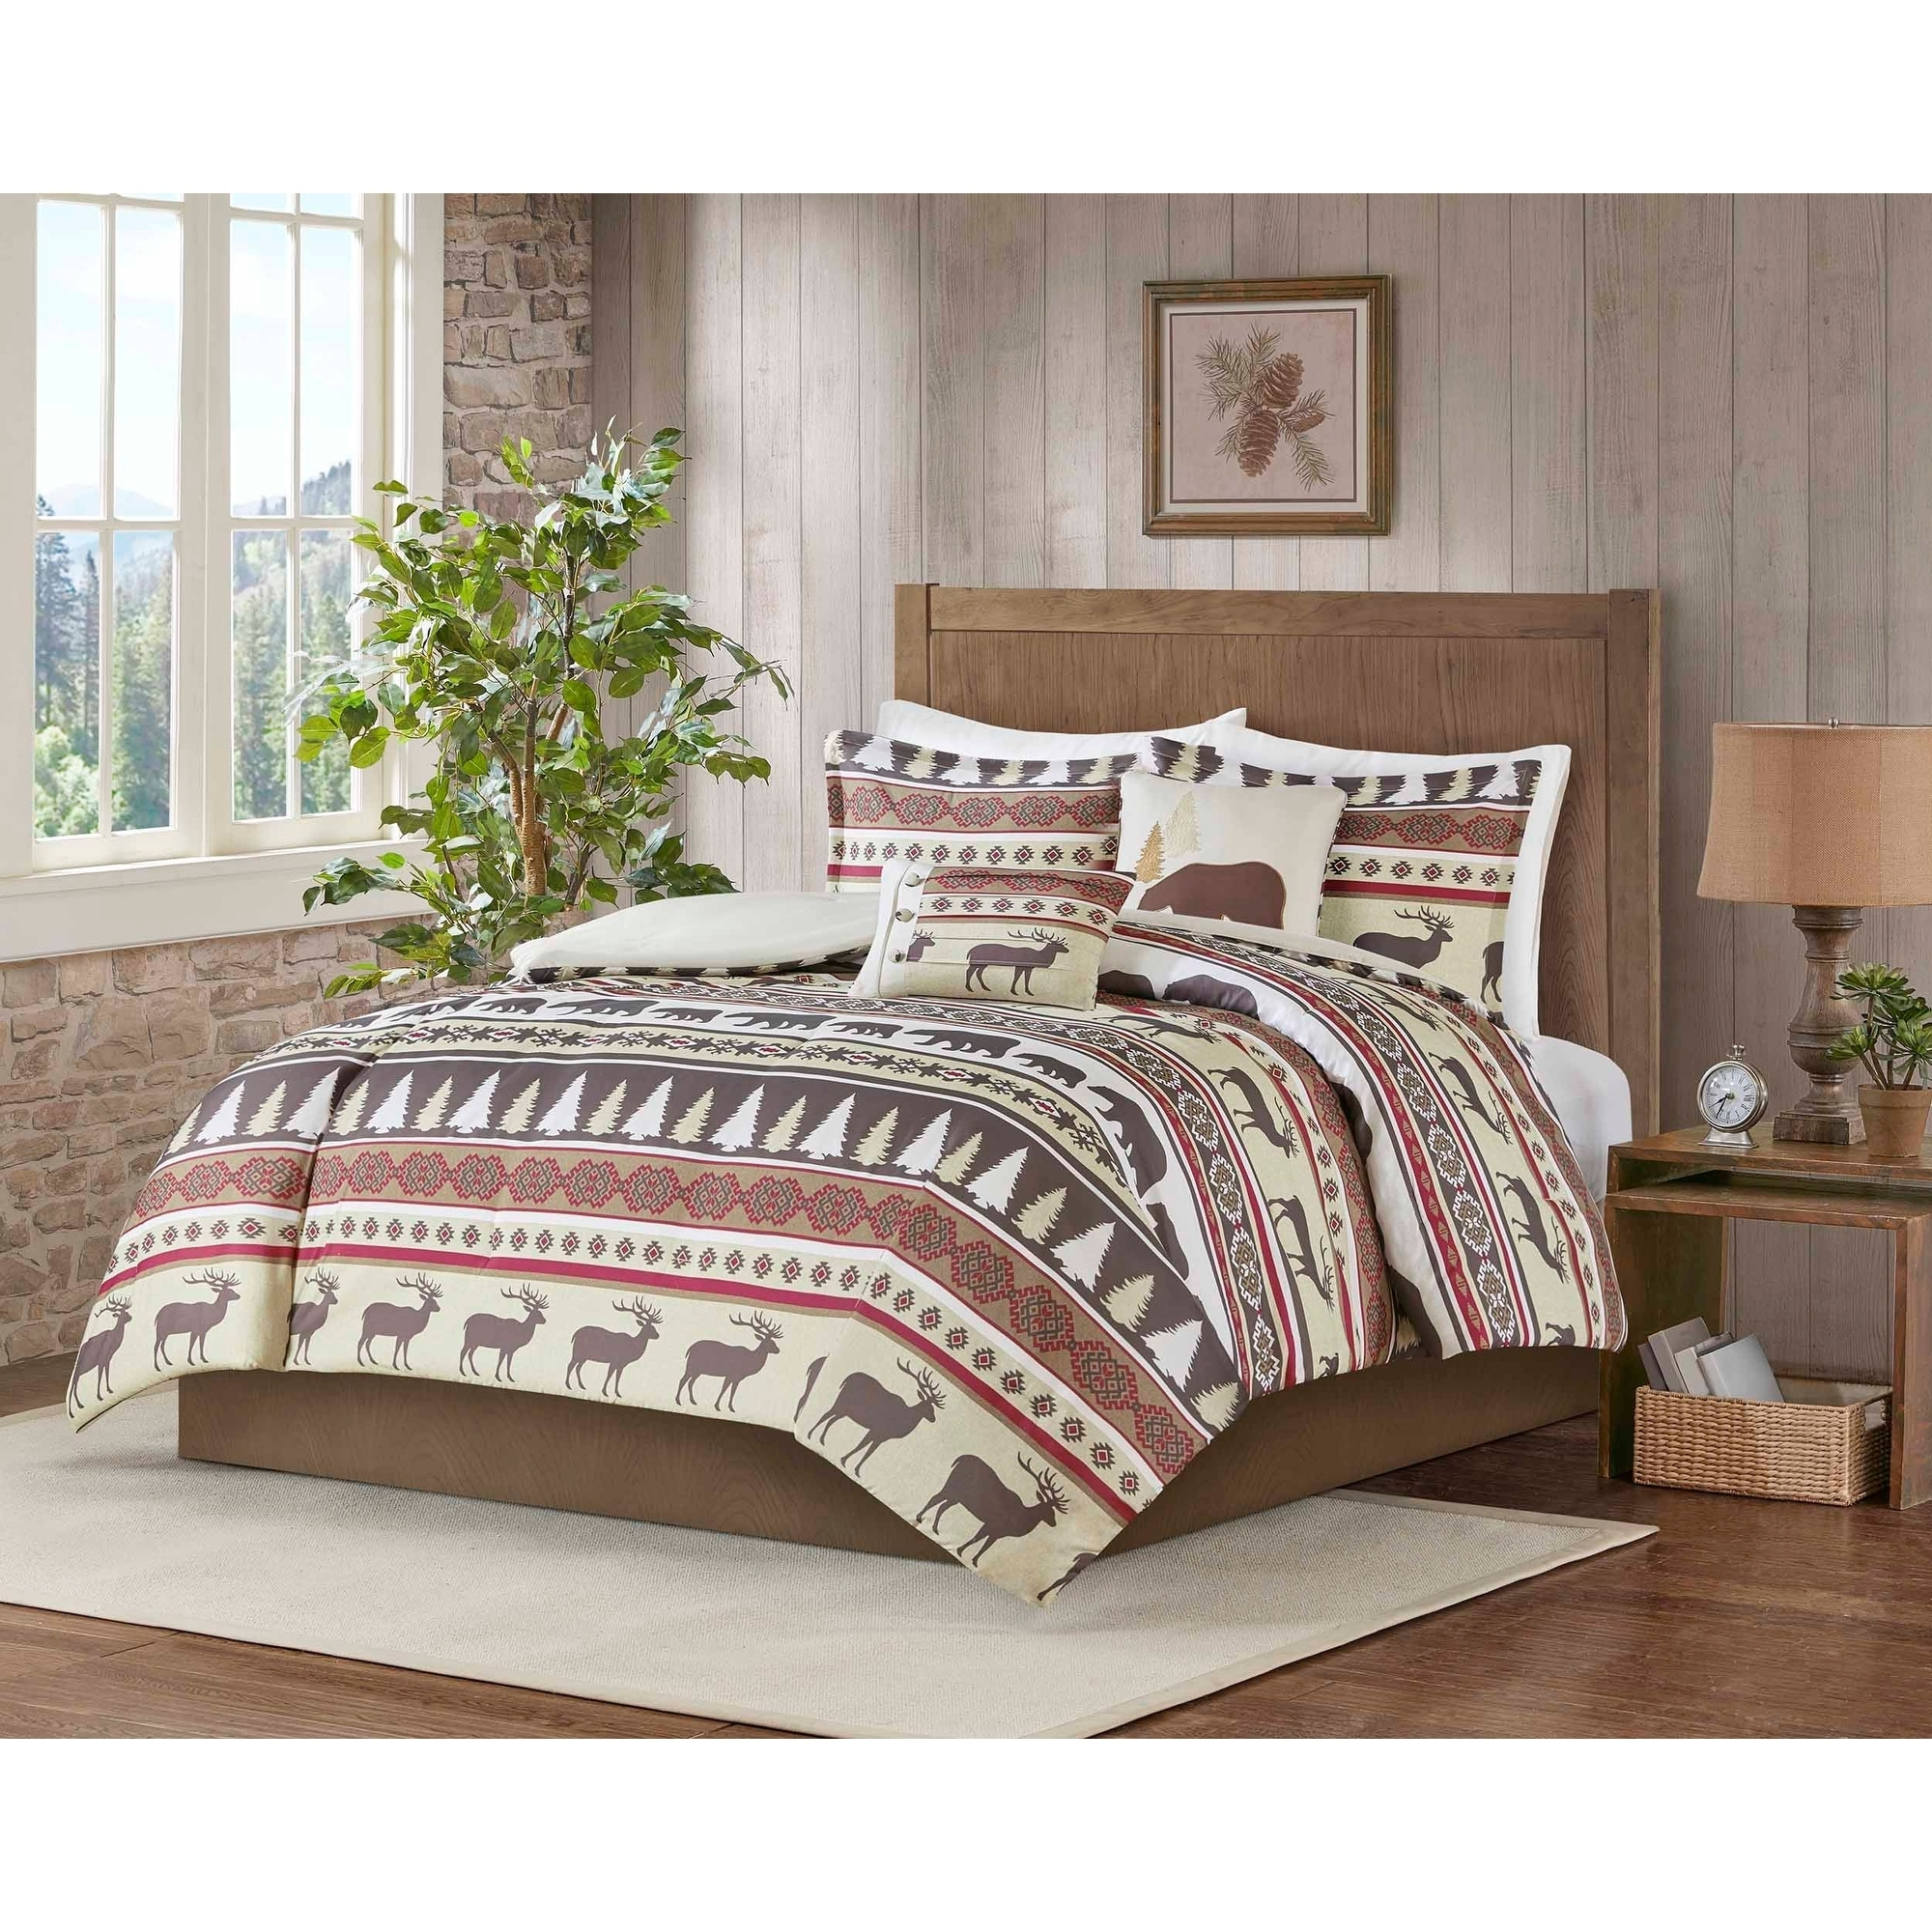 Christmas Comforter.Carbon Loft 5 Piece Rustic Lodge Cabin Christmas Comforter Set